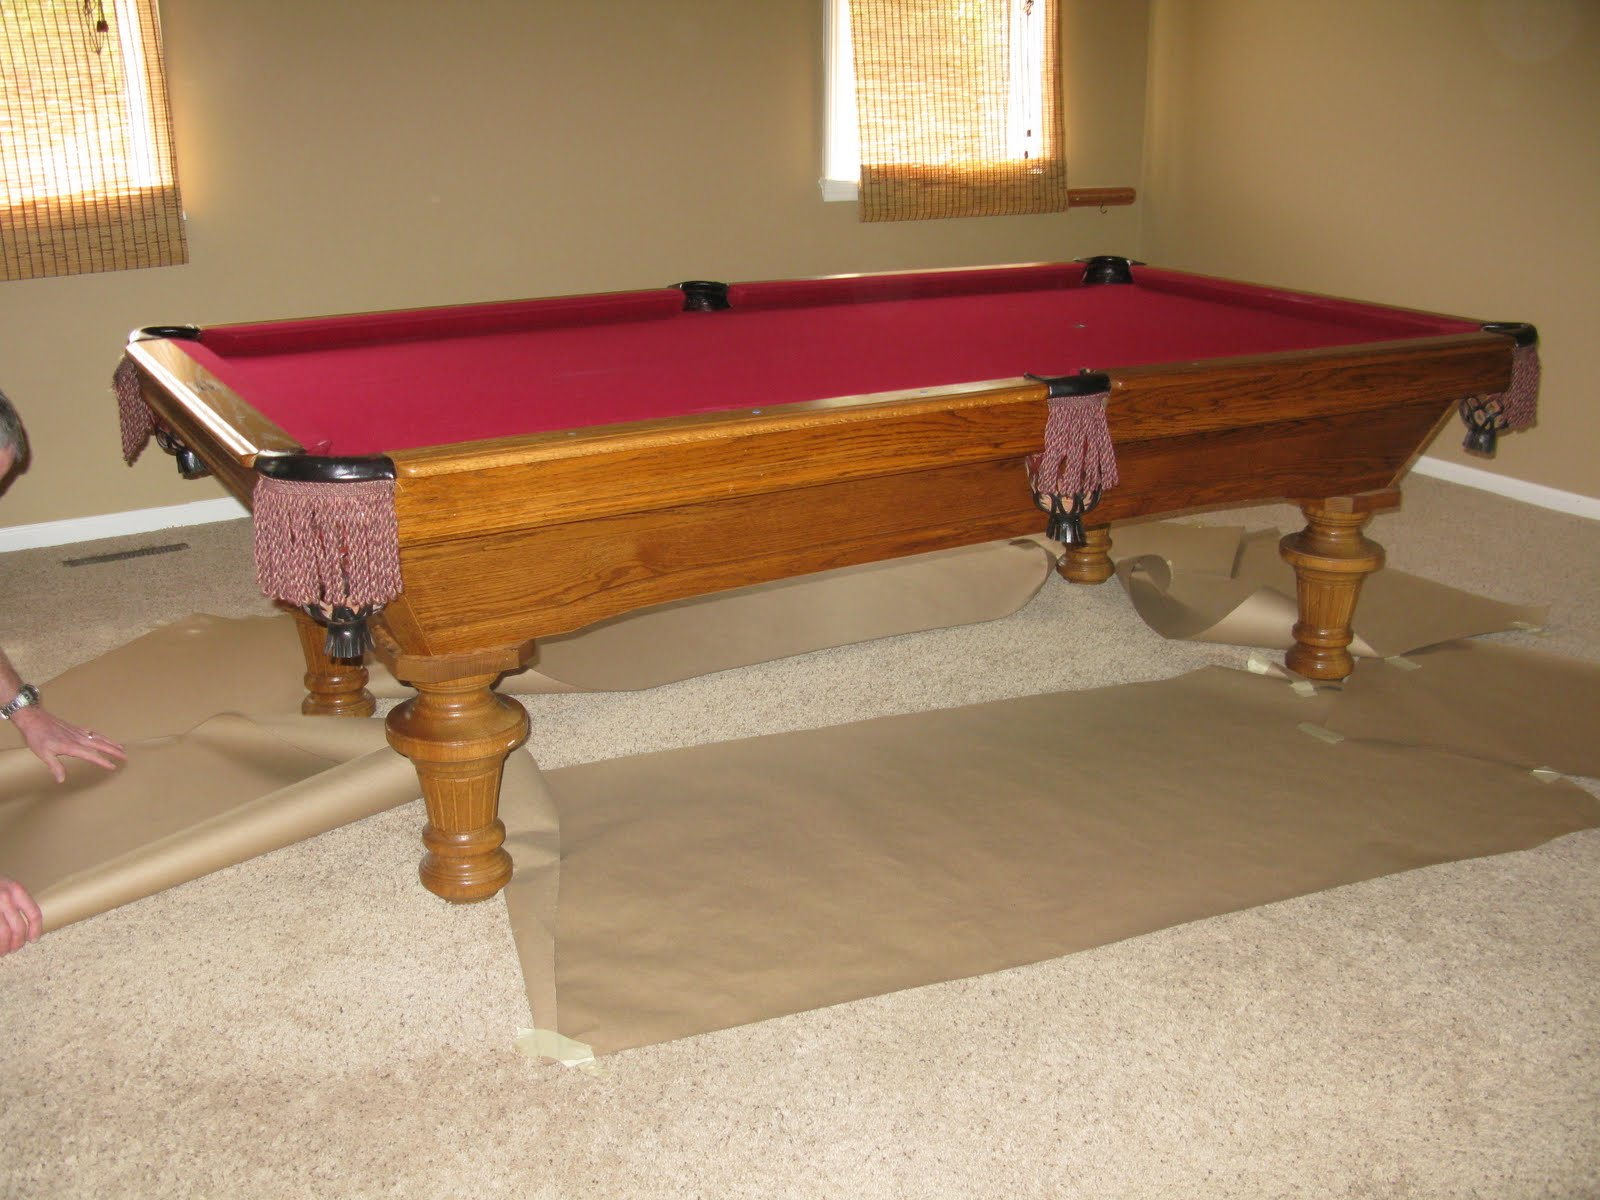 Expensive Pool Table projects plenty: pool table re-do